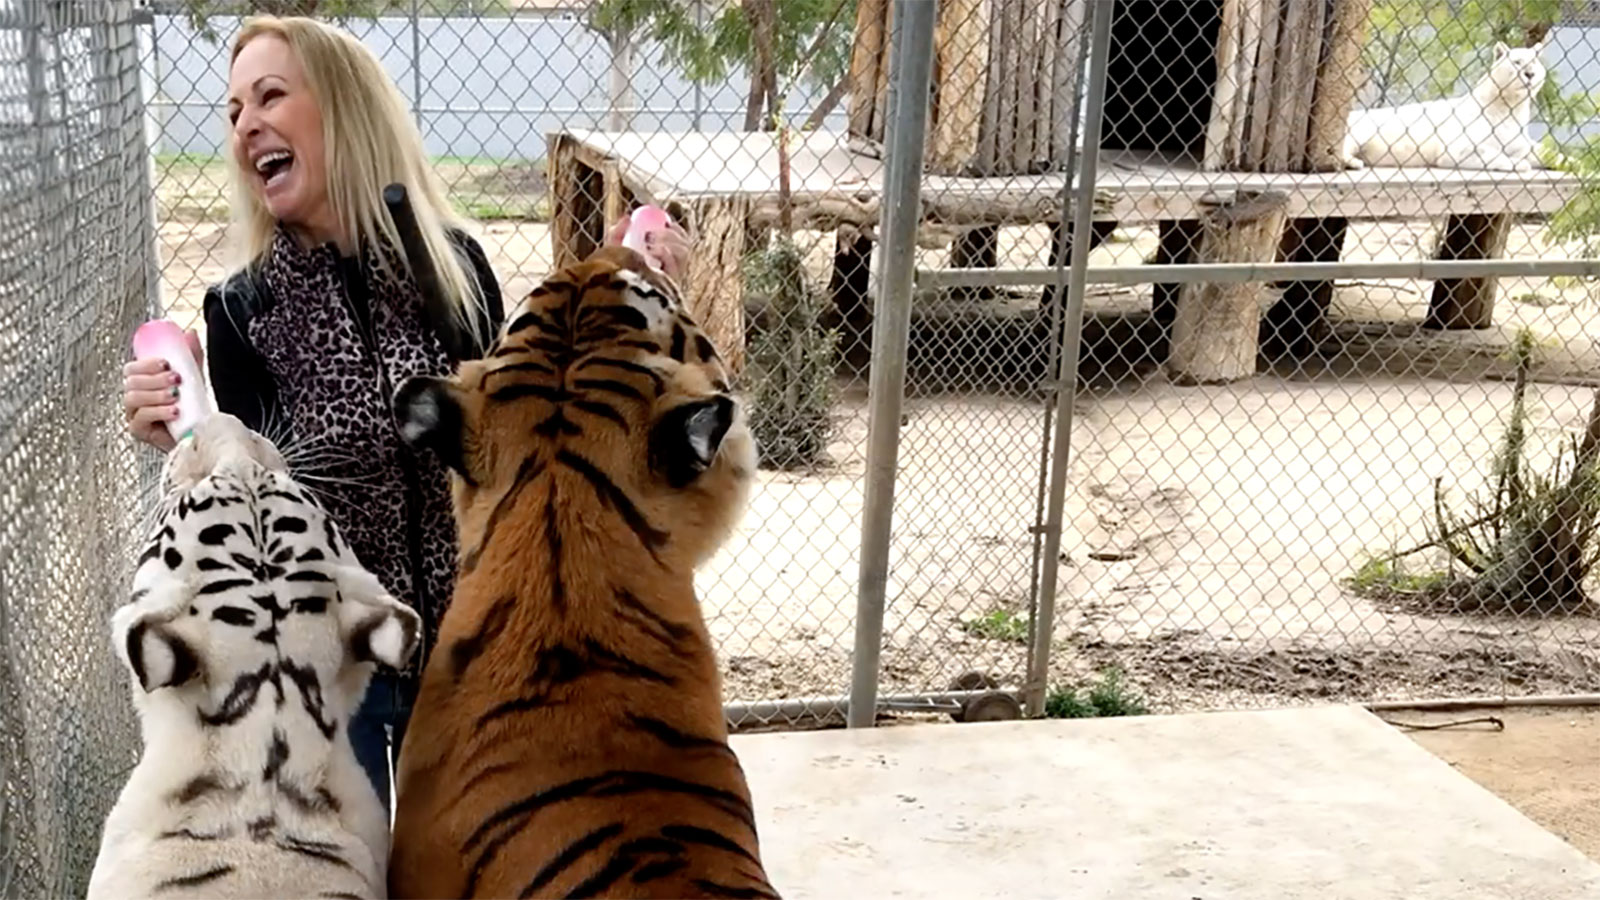 A wildlife conservationist who was mauled by her own tigers insists they were just playing with her